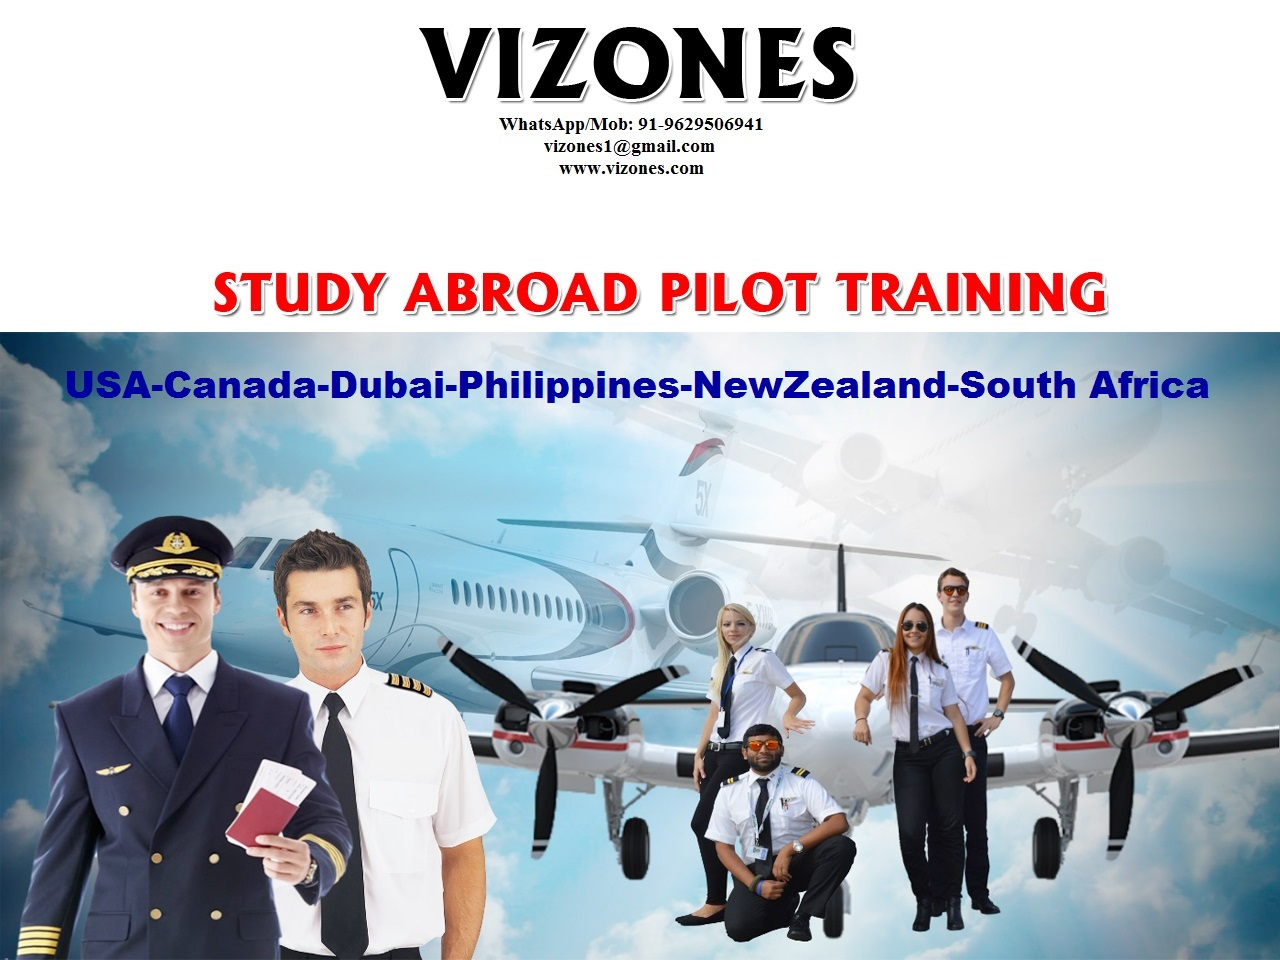 MBBS-Healthcare-Pilot Training-STEM Courses - VIZONES